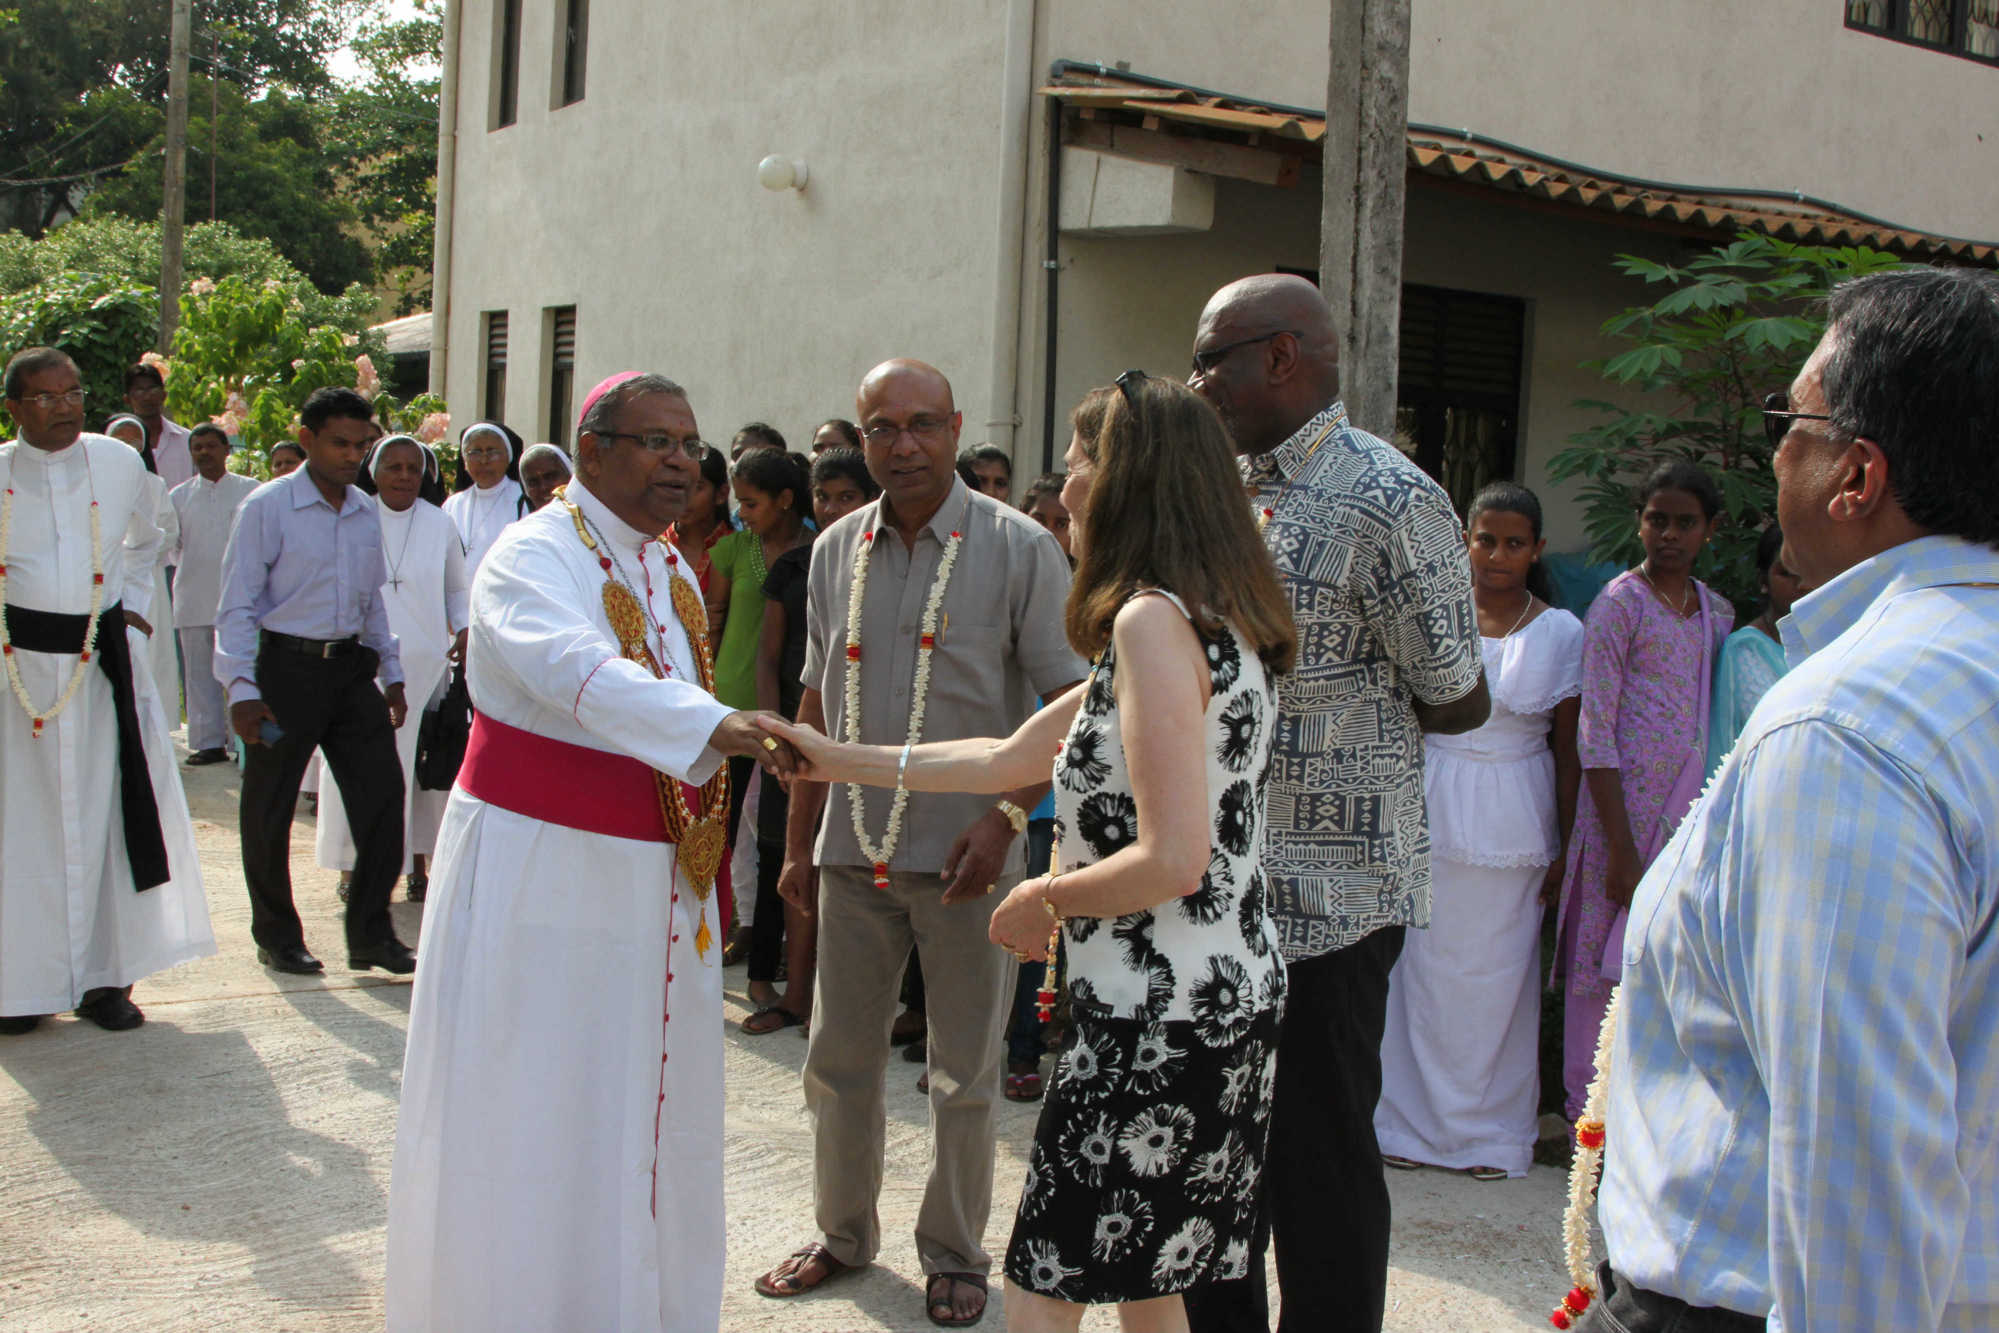 Frances Chanmugam meeting the priest at the home